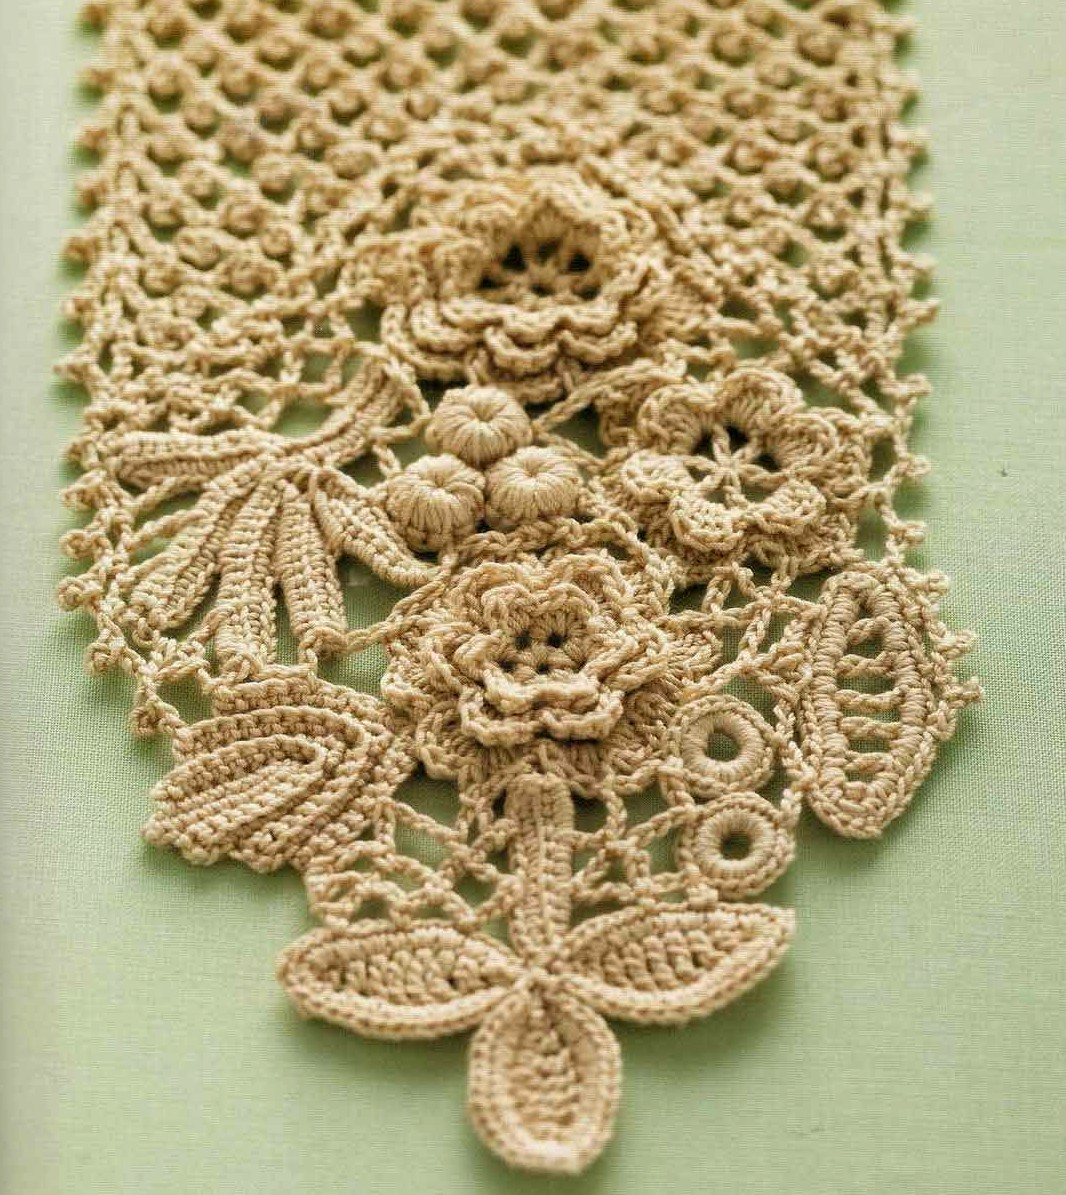 Crocheting Lace For Beginners : CROCHET IRISH LACE Crochet For Beginners